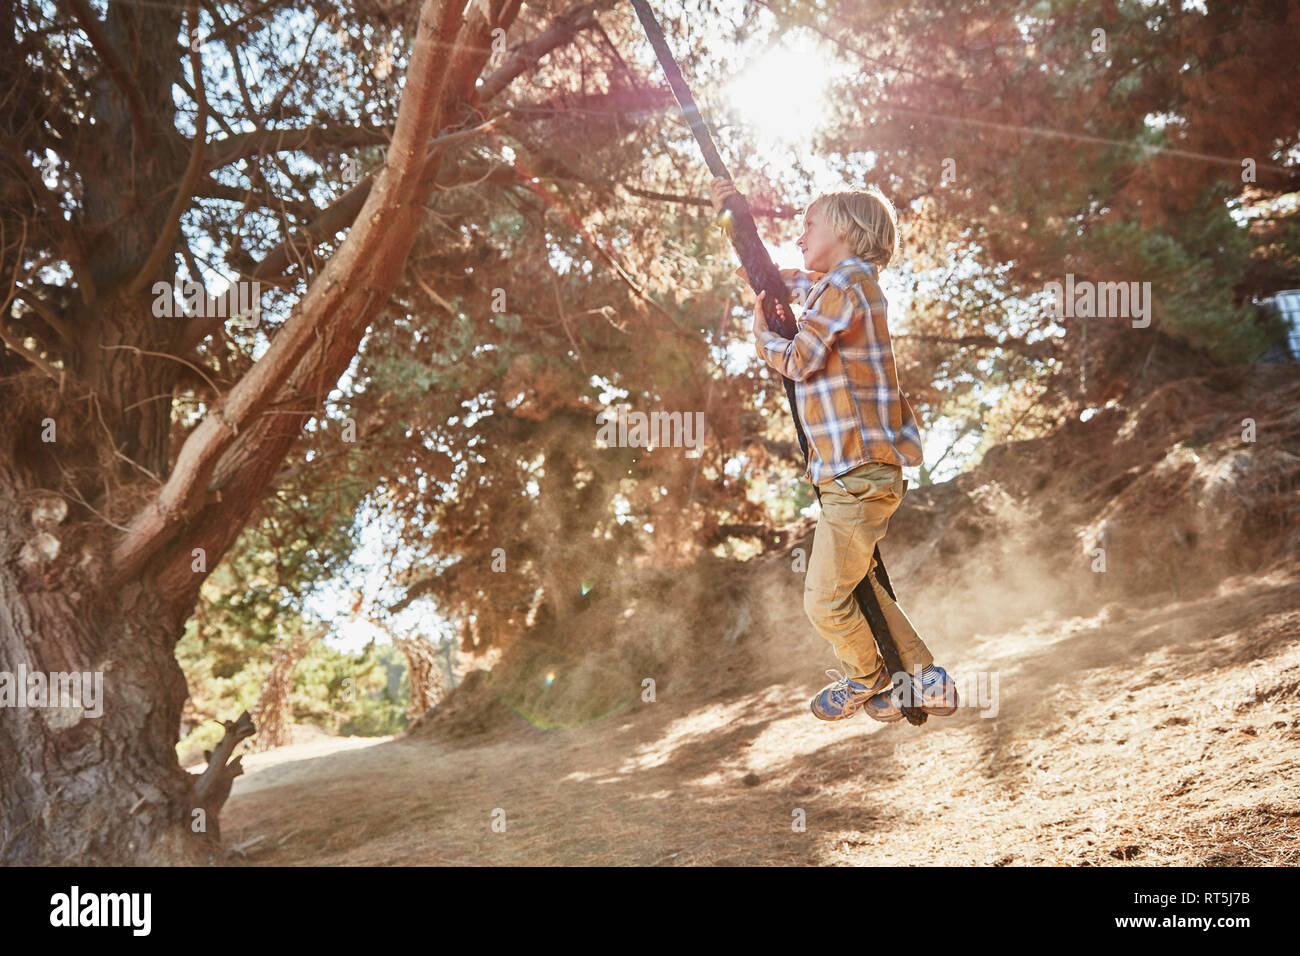 Boy swinging on a rope in backlight - Stock Image